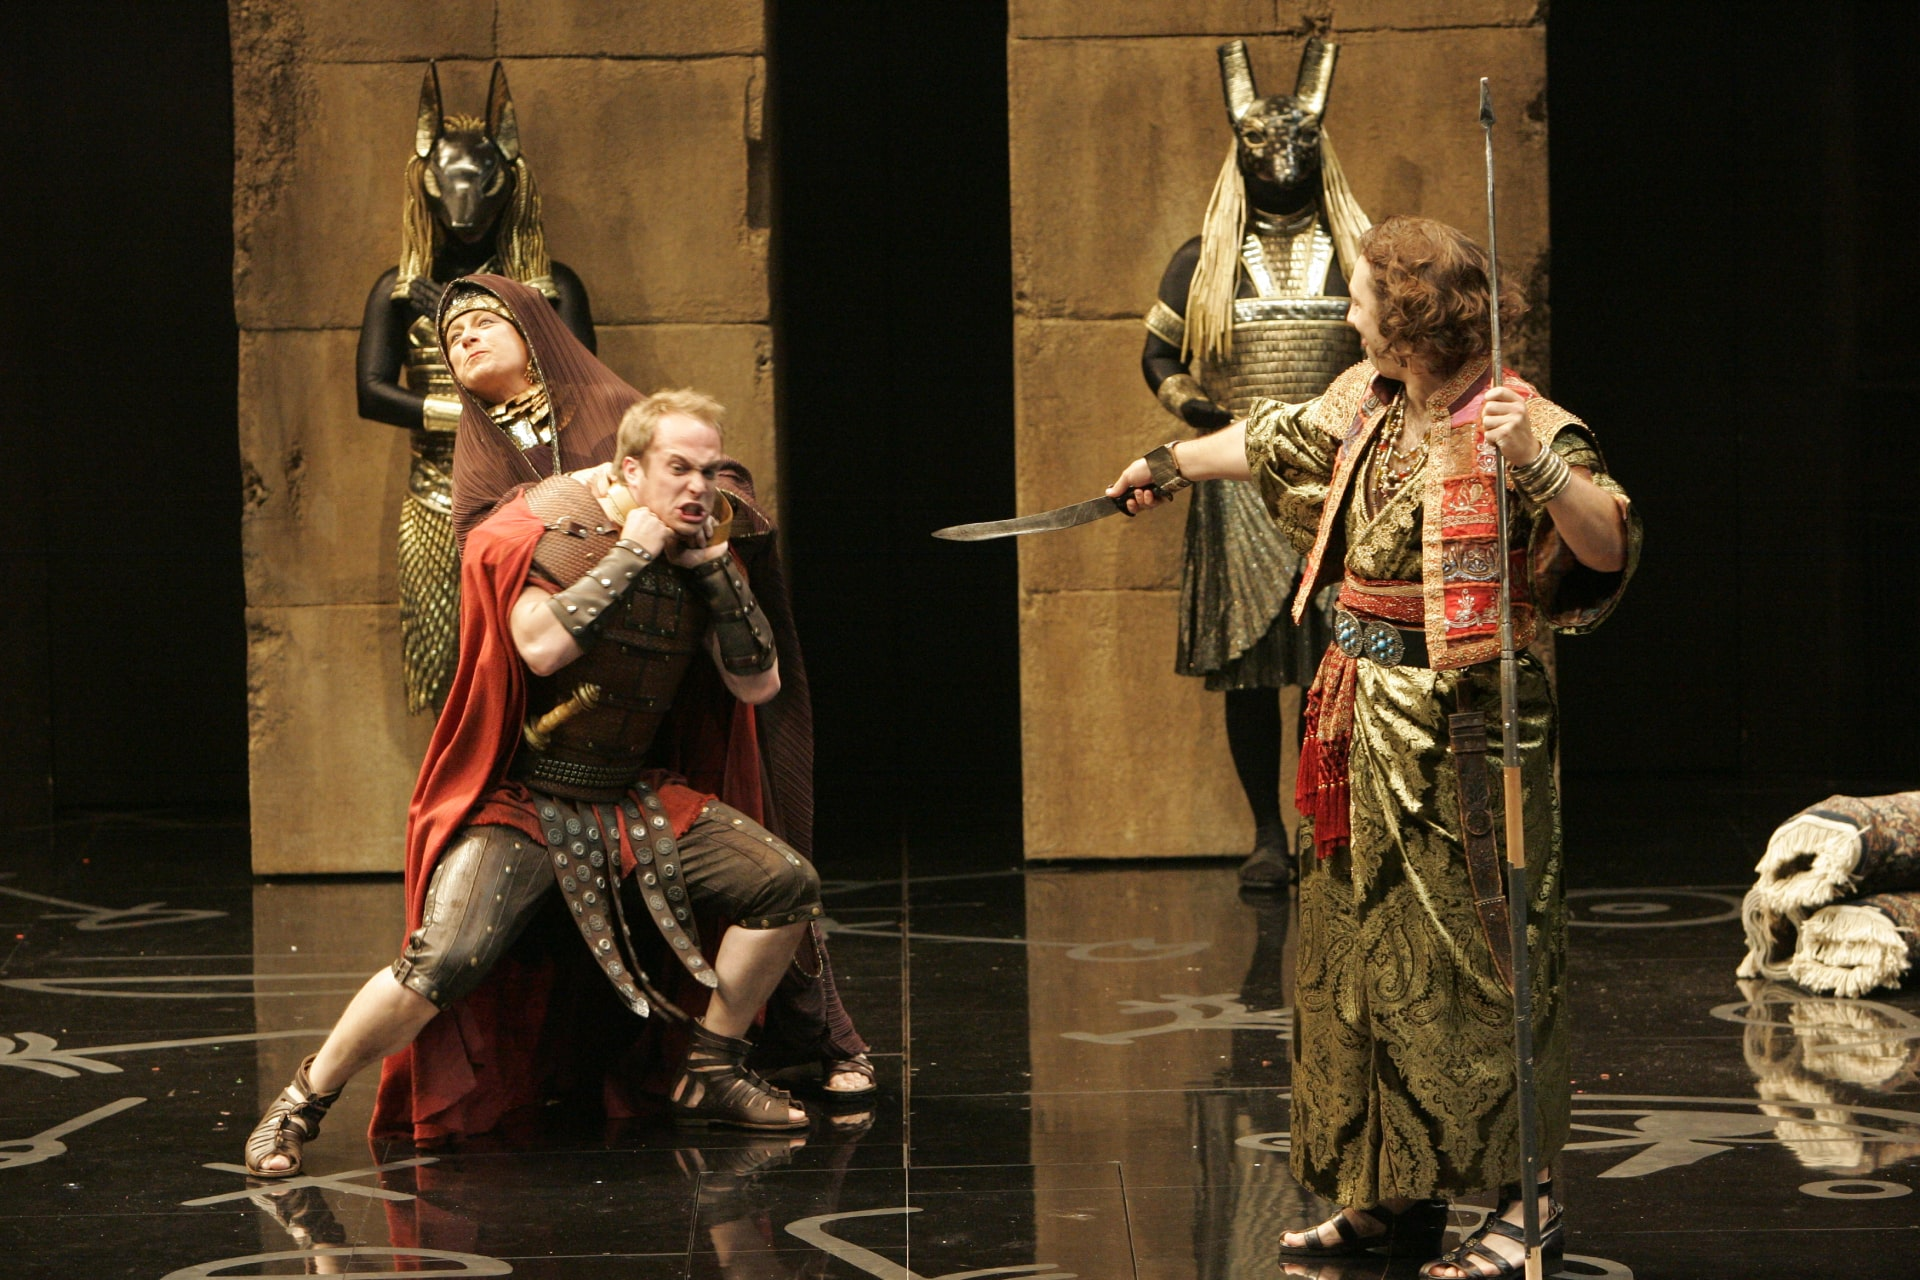 Merchant in ornate costume mocks Roman soldier being chocked by woman on shiny black floor.